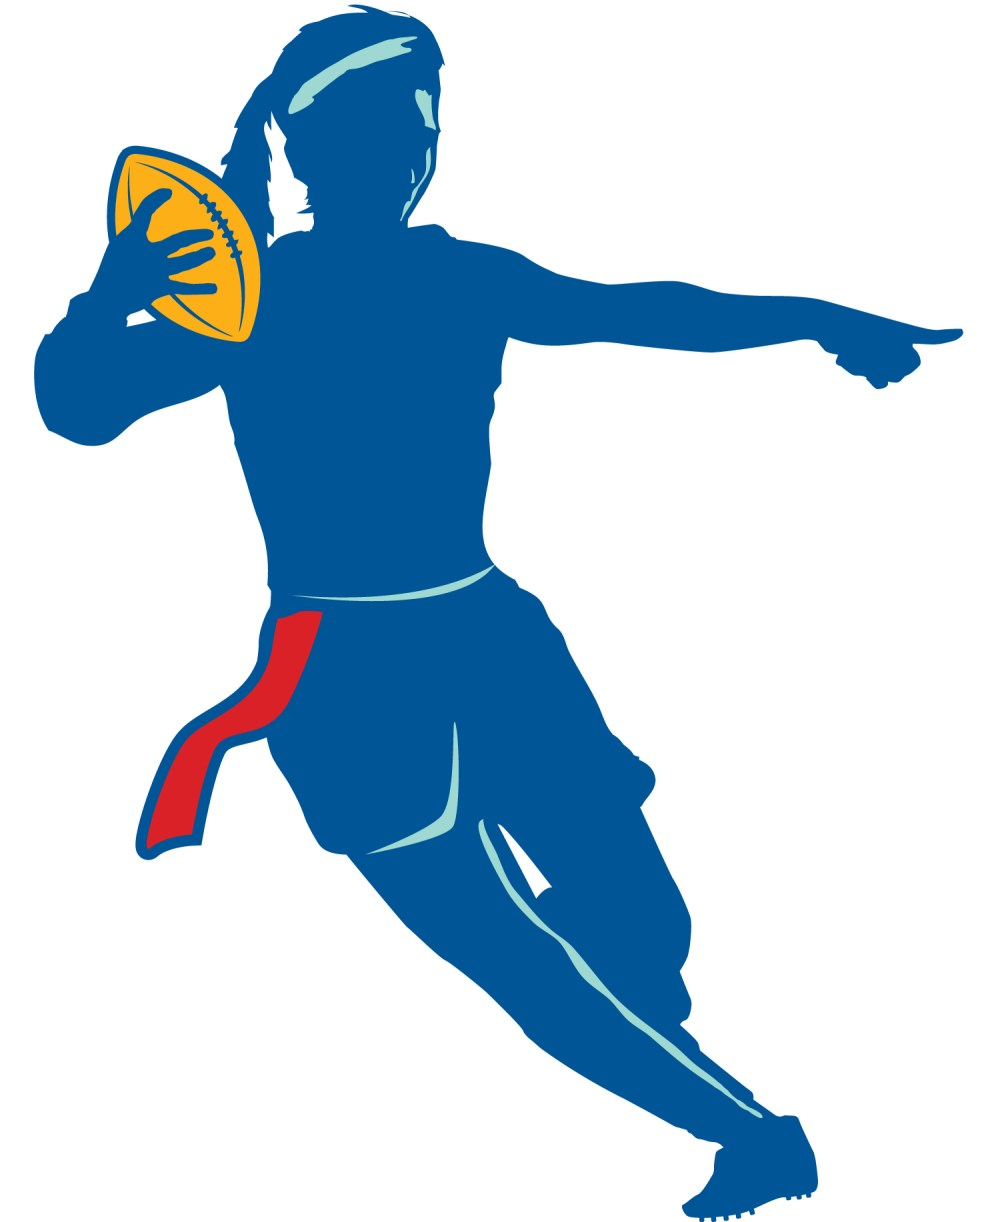 medium resolution of flag football clipart black and white free